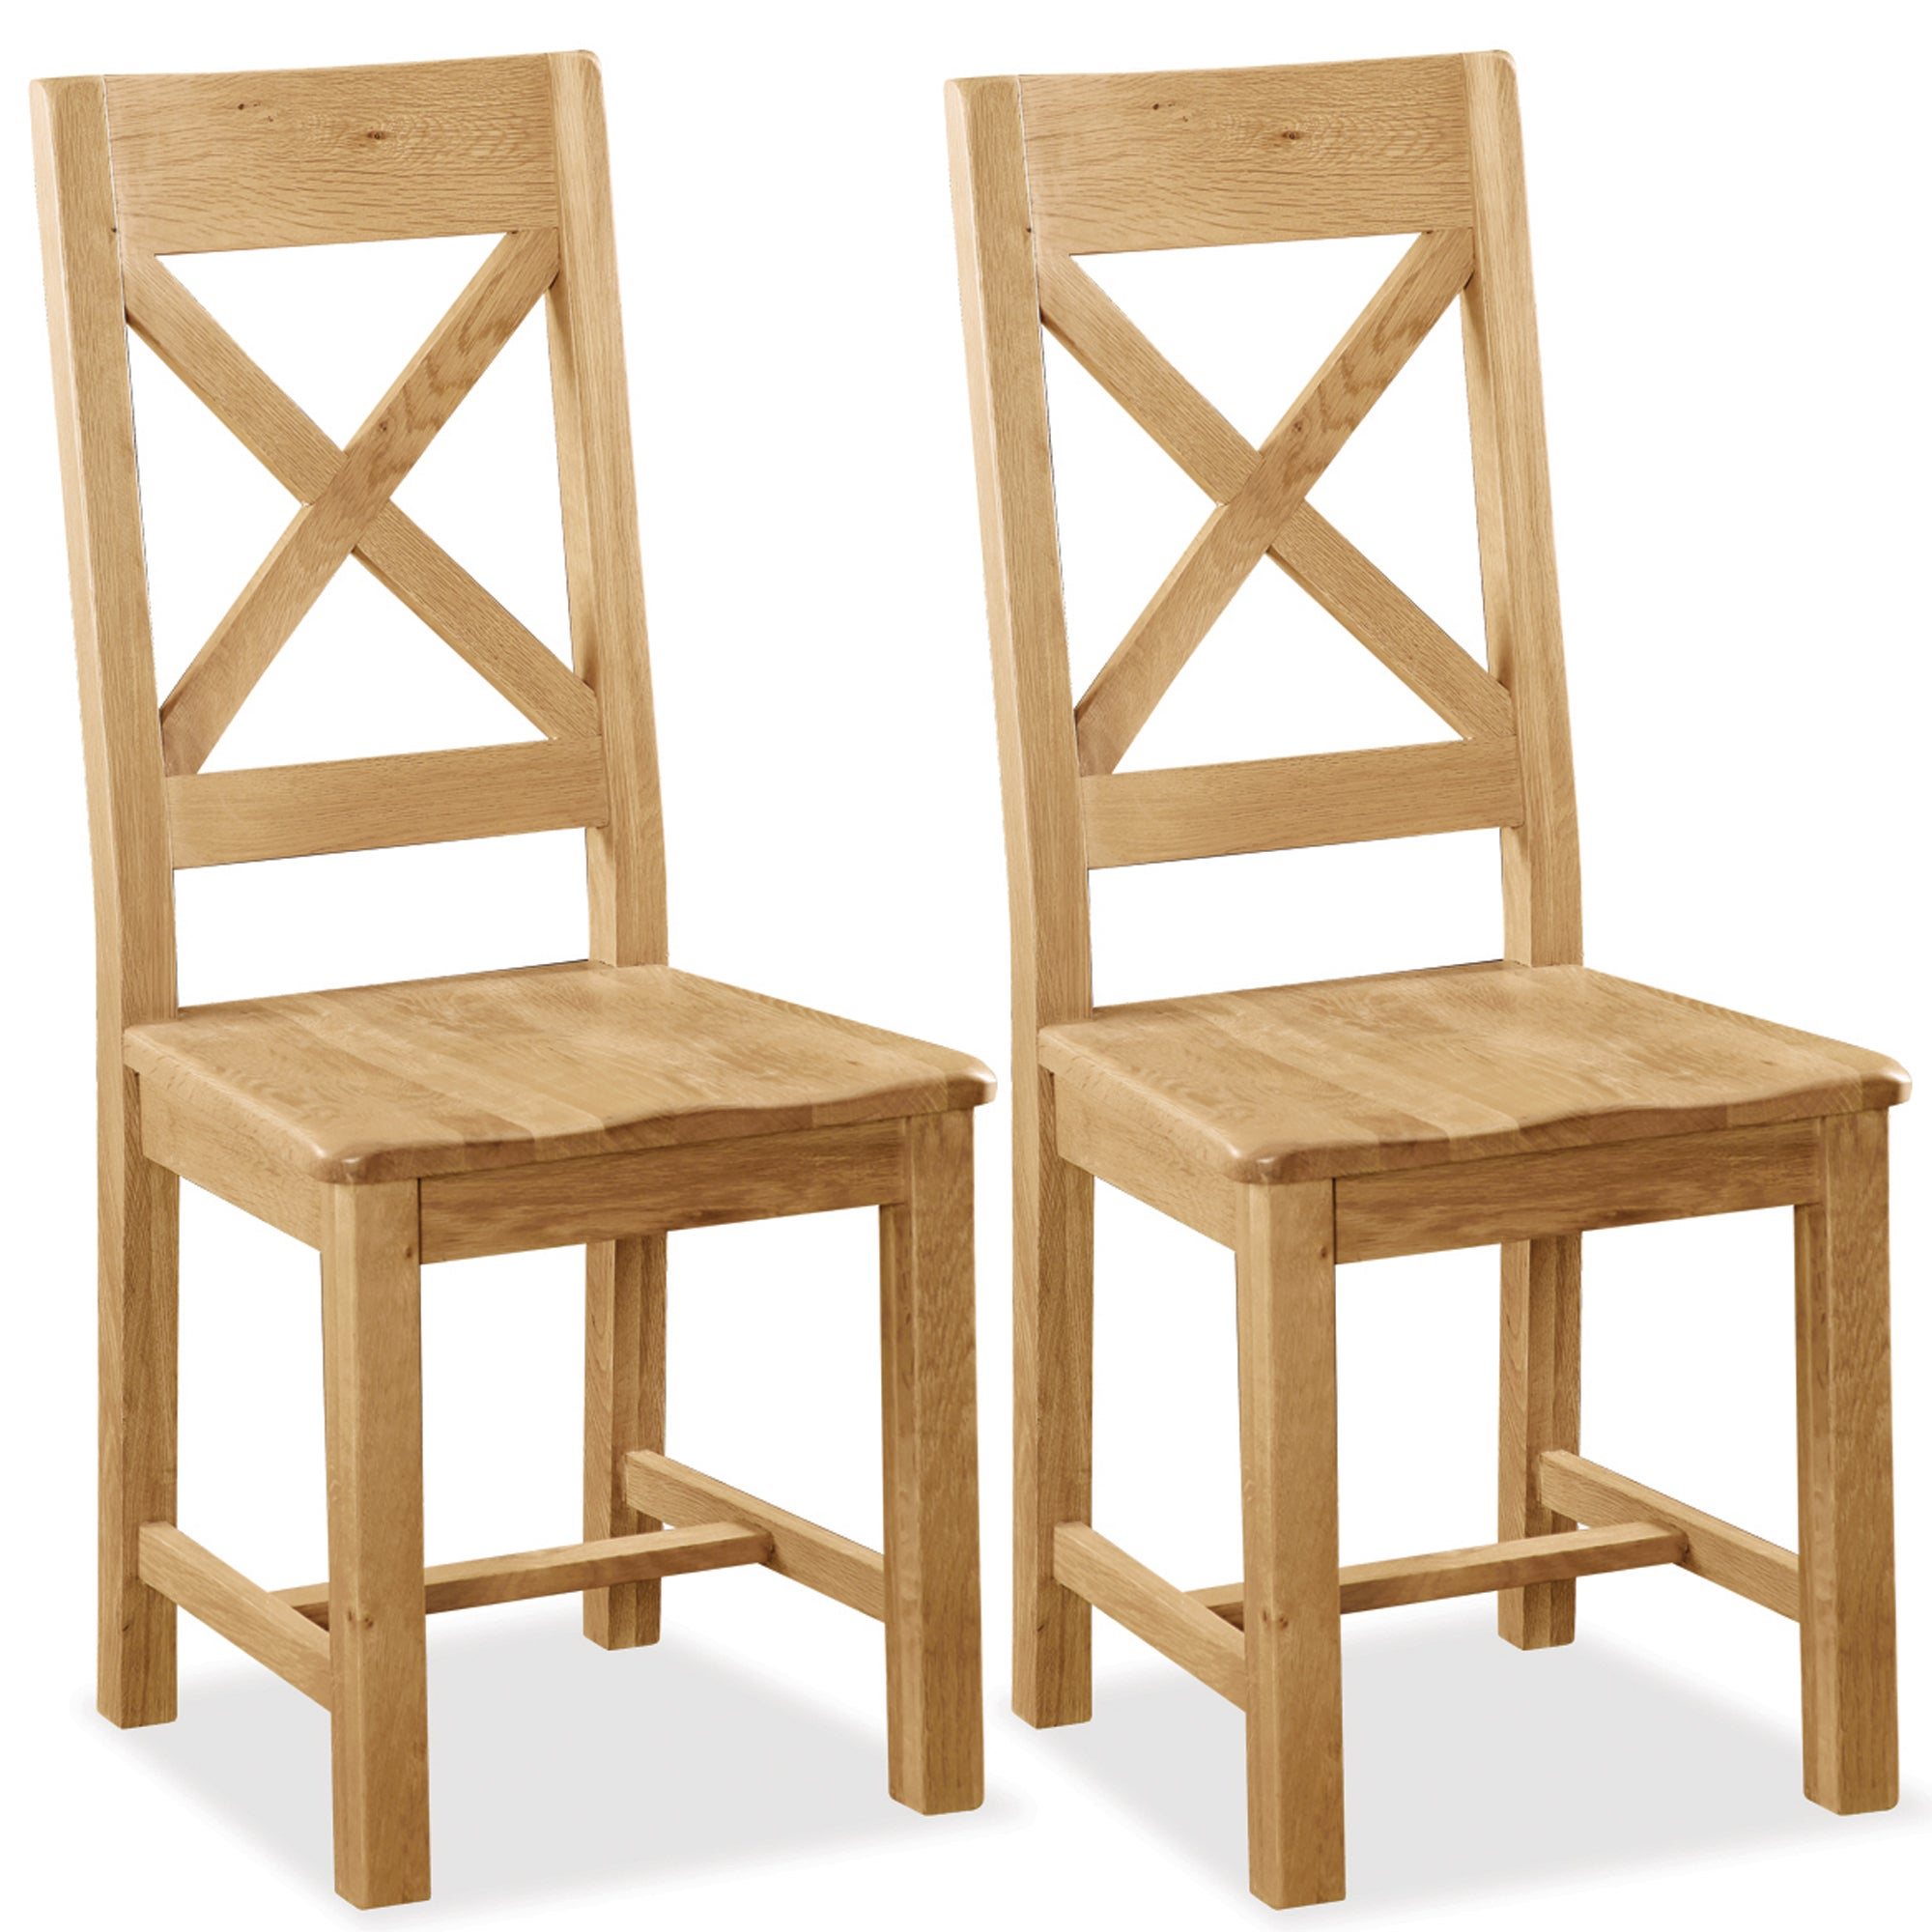 Harrogate Pair of Oak Cross Back Dining Chairs